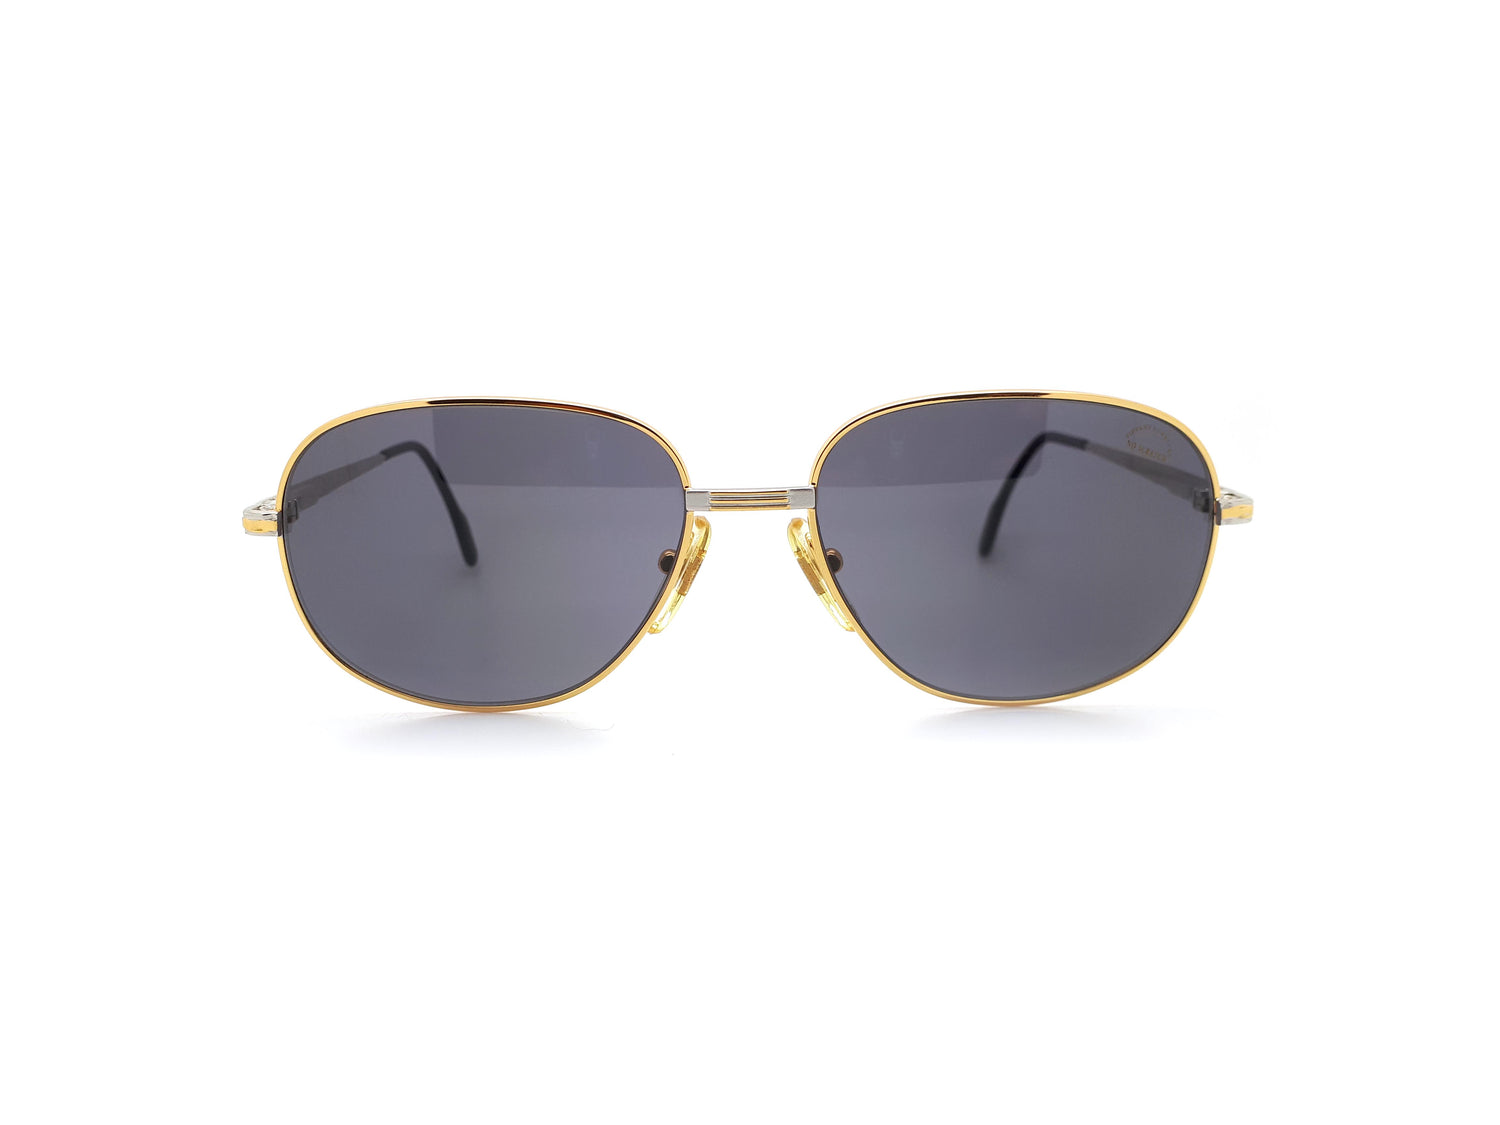 Life by Tiffany Lunettes T371 C1 23KT Gold Plated